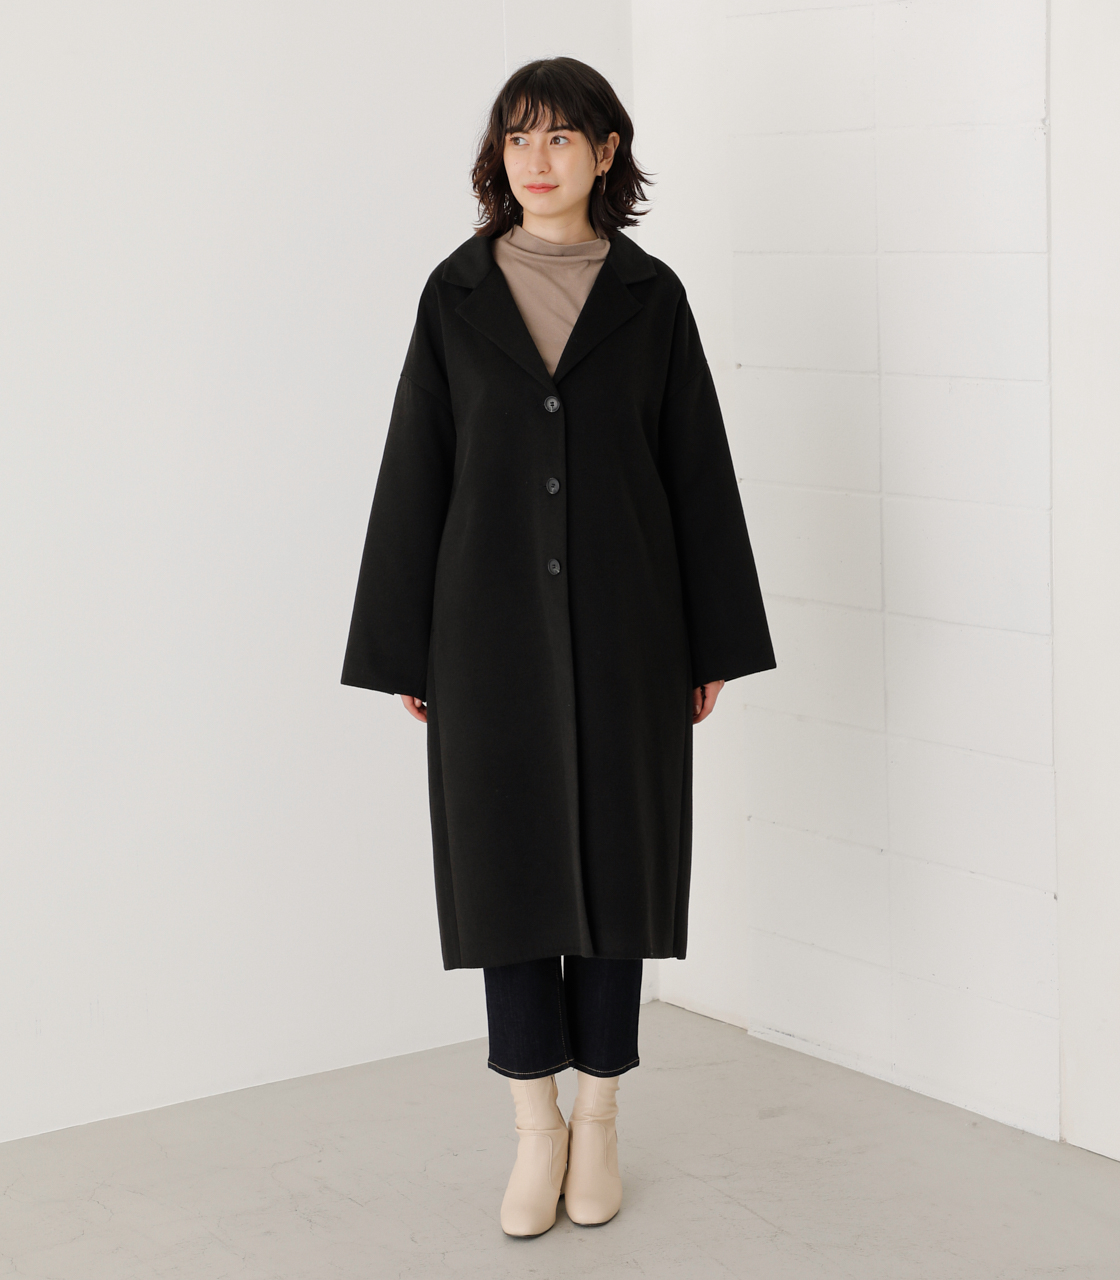 LOOSE CHESTER REVER COAT/ルーズチェスターリバーコート 詳細画像 BLK 4